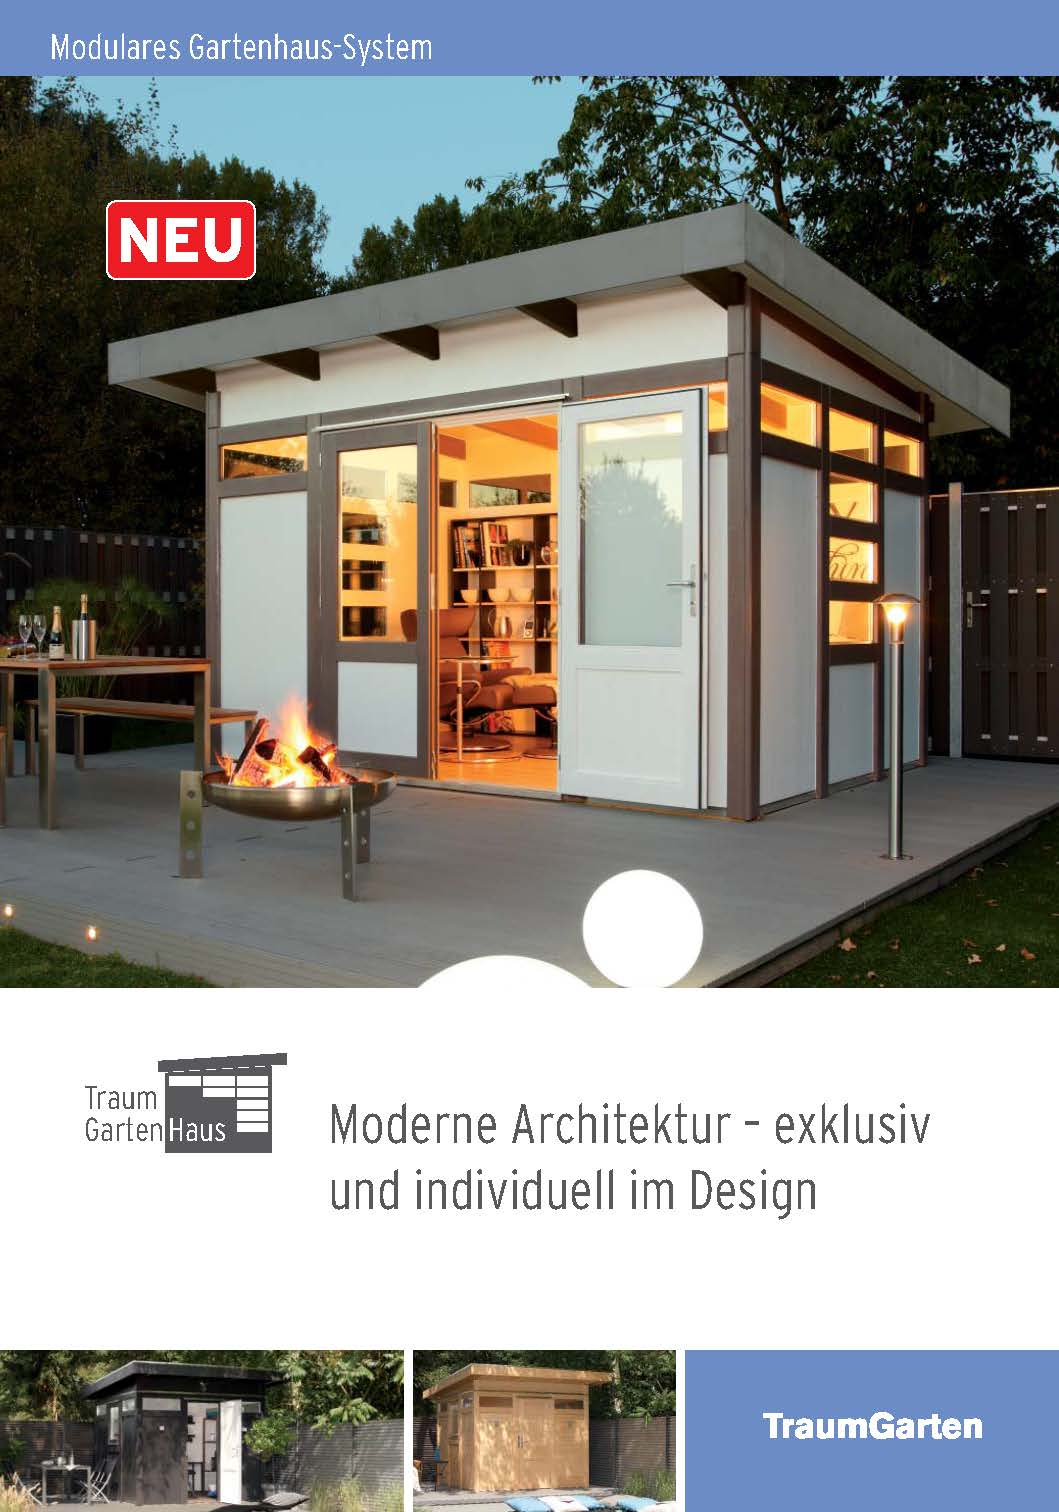 bauholz kvh terrasse zaun parkett paneel augsburg m nchen landsberg carports gartenh user. Black Bedroom Furniture Sets. Home Design Ideas